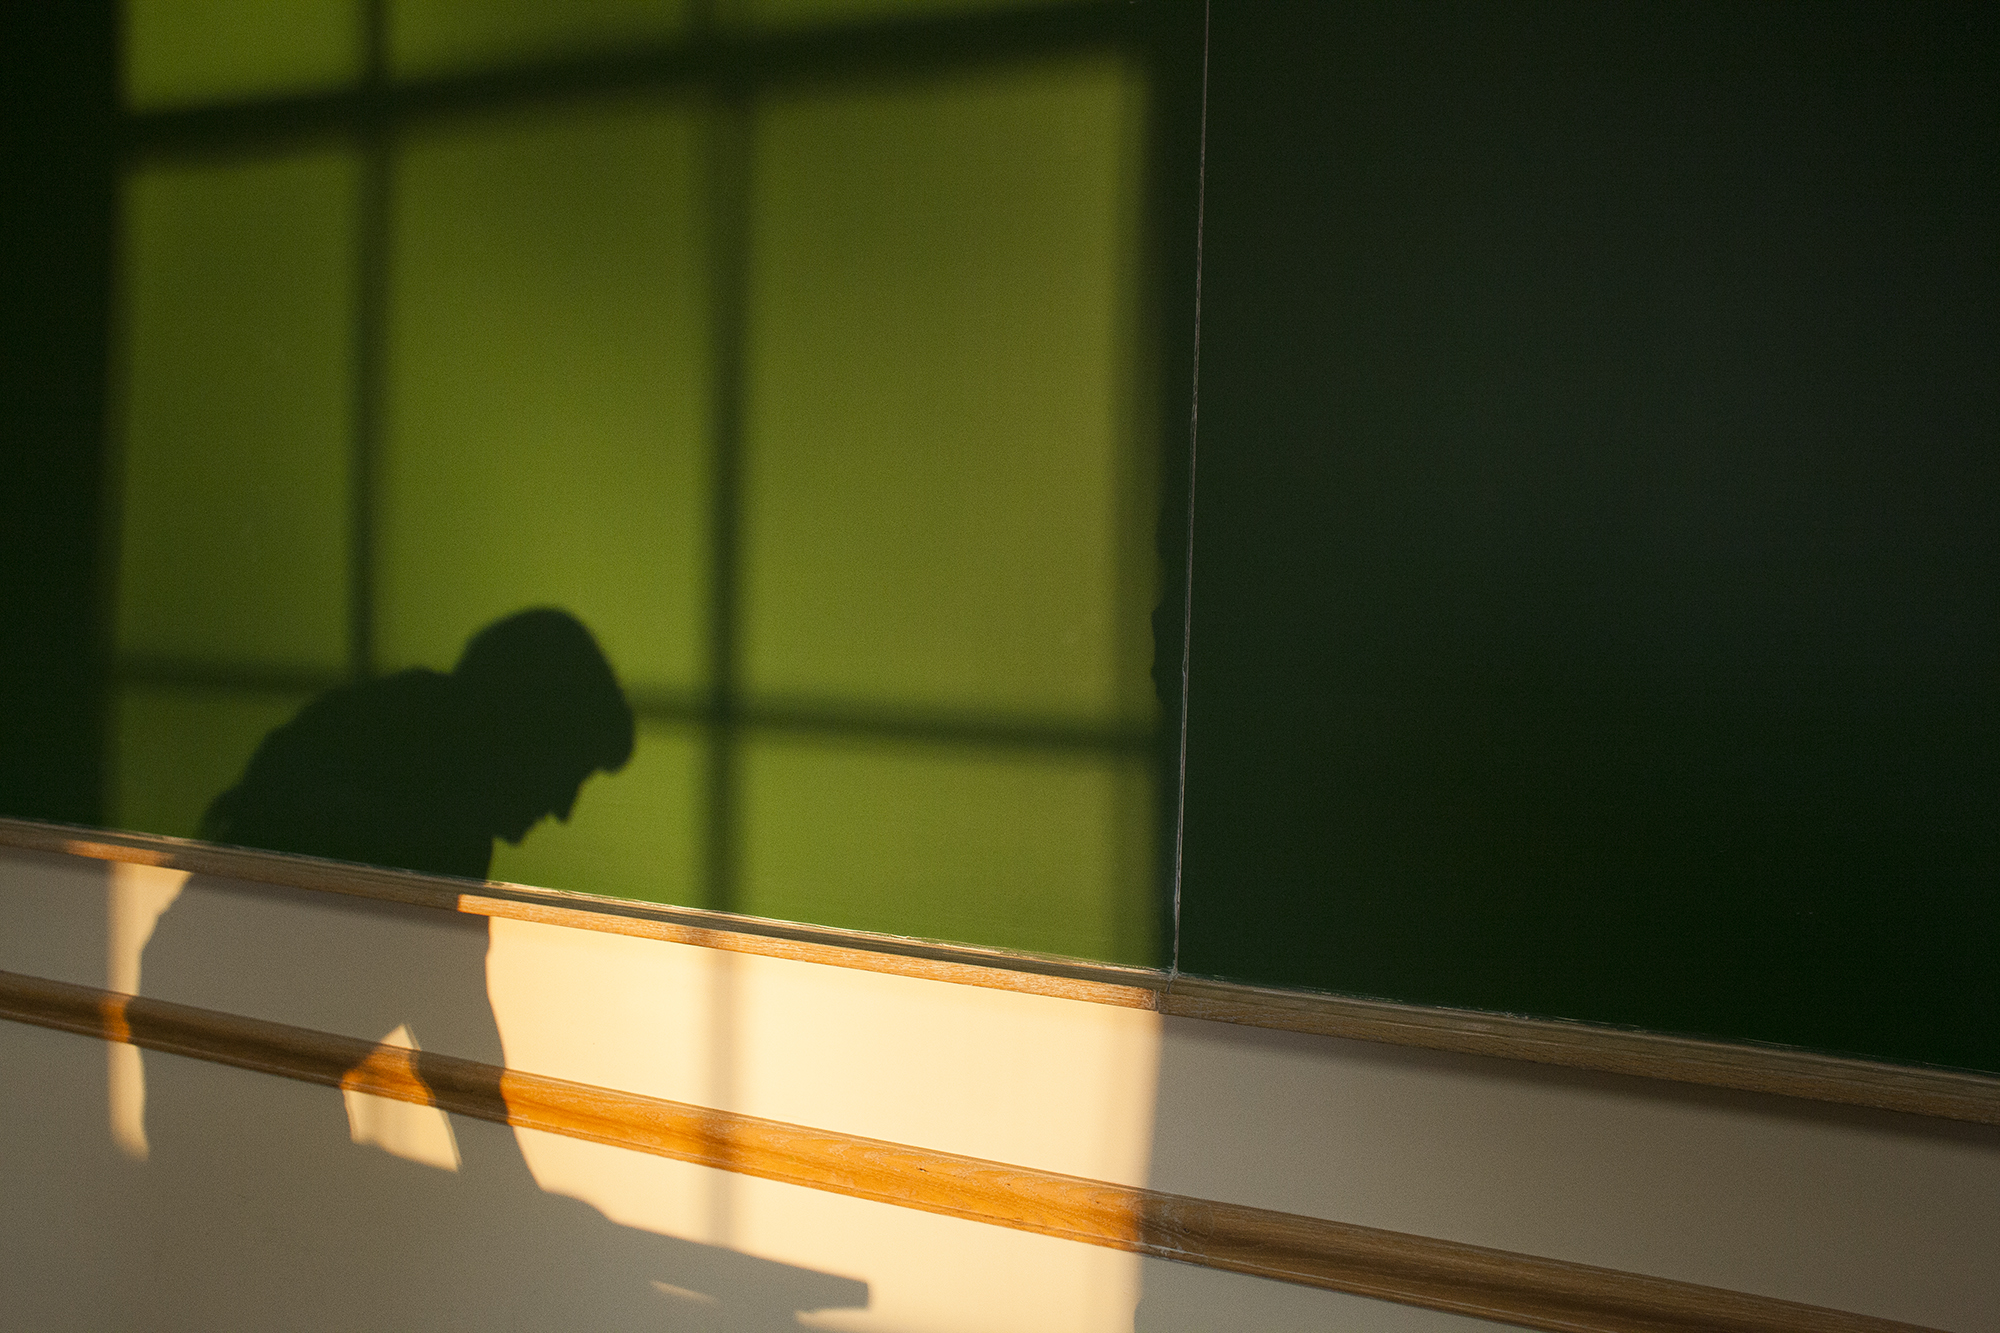 A custodian cleans a classroom at sunset. (Babz Jewell 2017, all rights reserved)